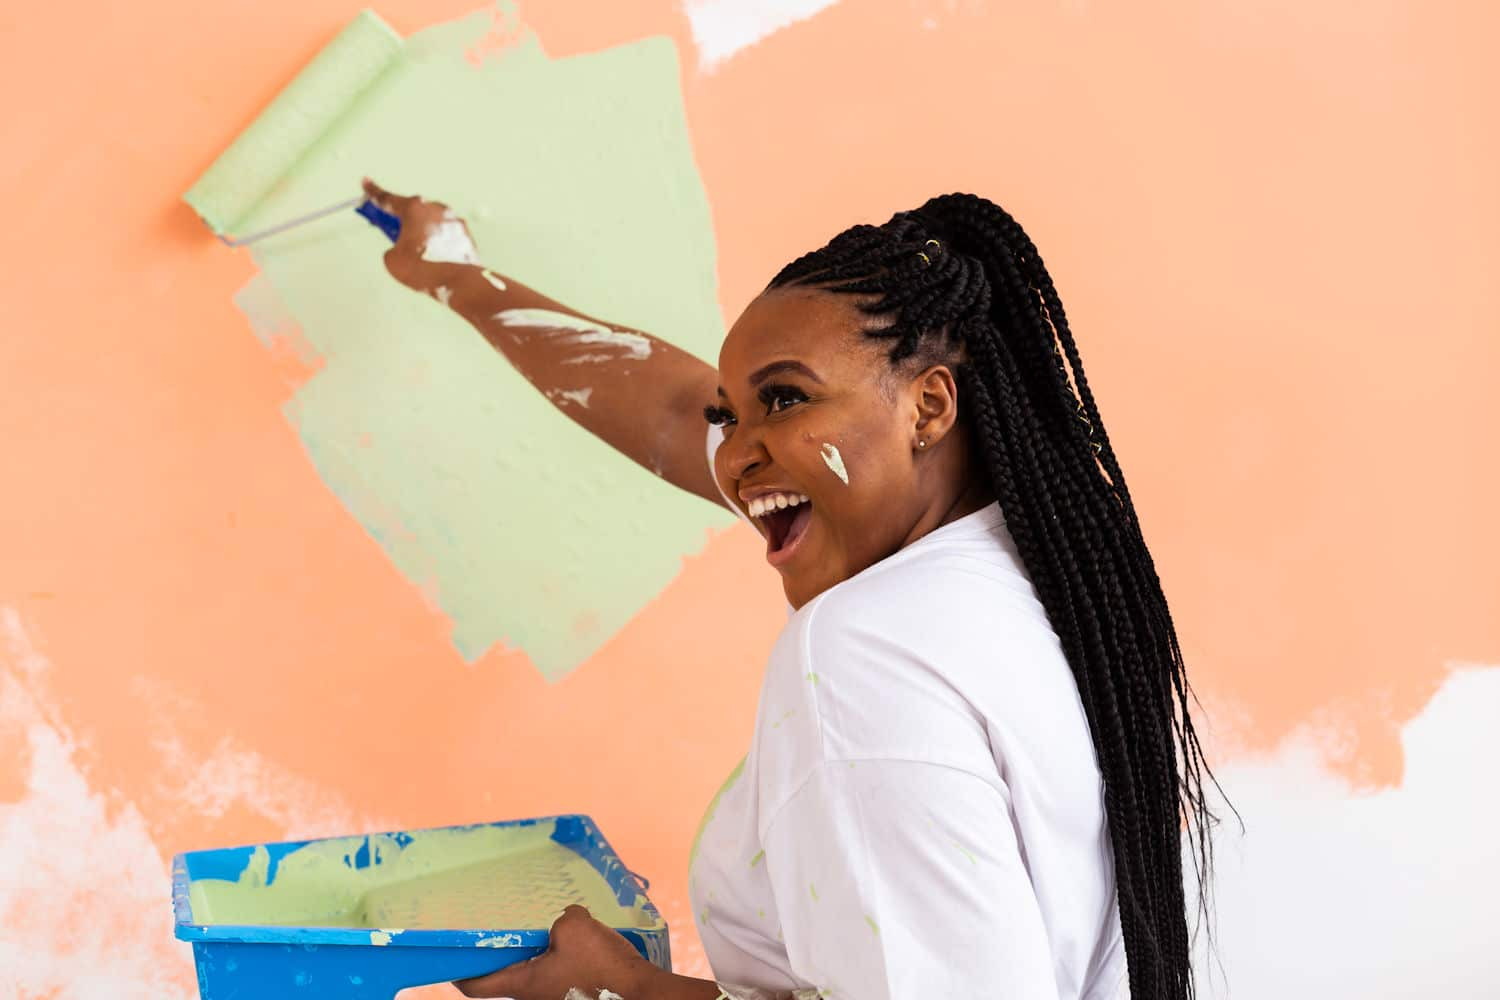 woman painting with a laugh and smile